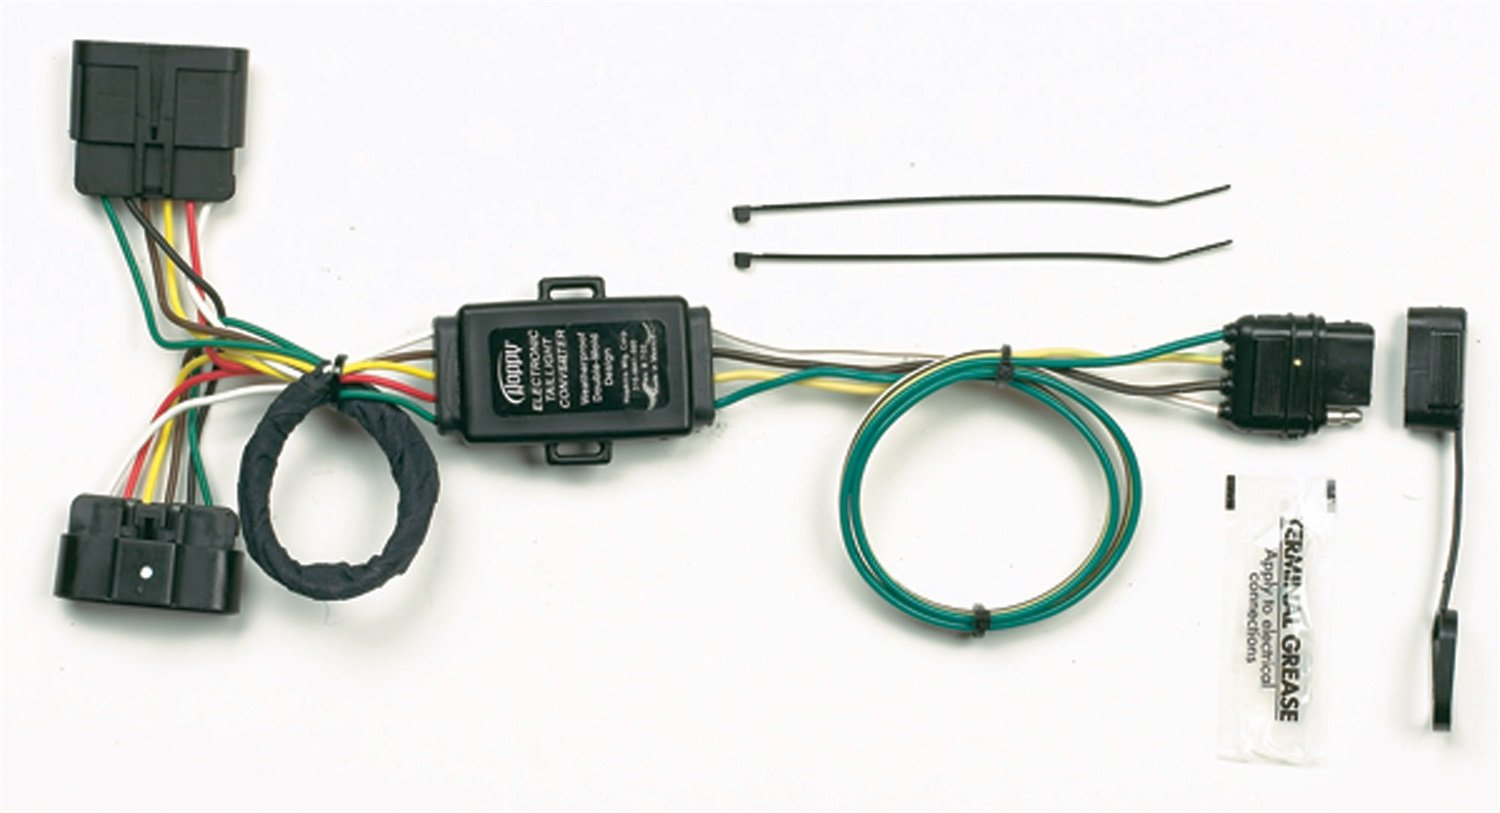 61exX8uloML._SL1500_ amazon com hopkins 41165 plug in simple vehicle wiring kit hoppy wiring harness at crackthecode.co